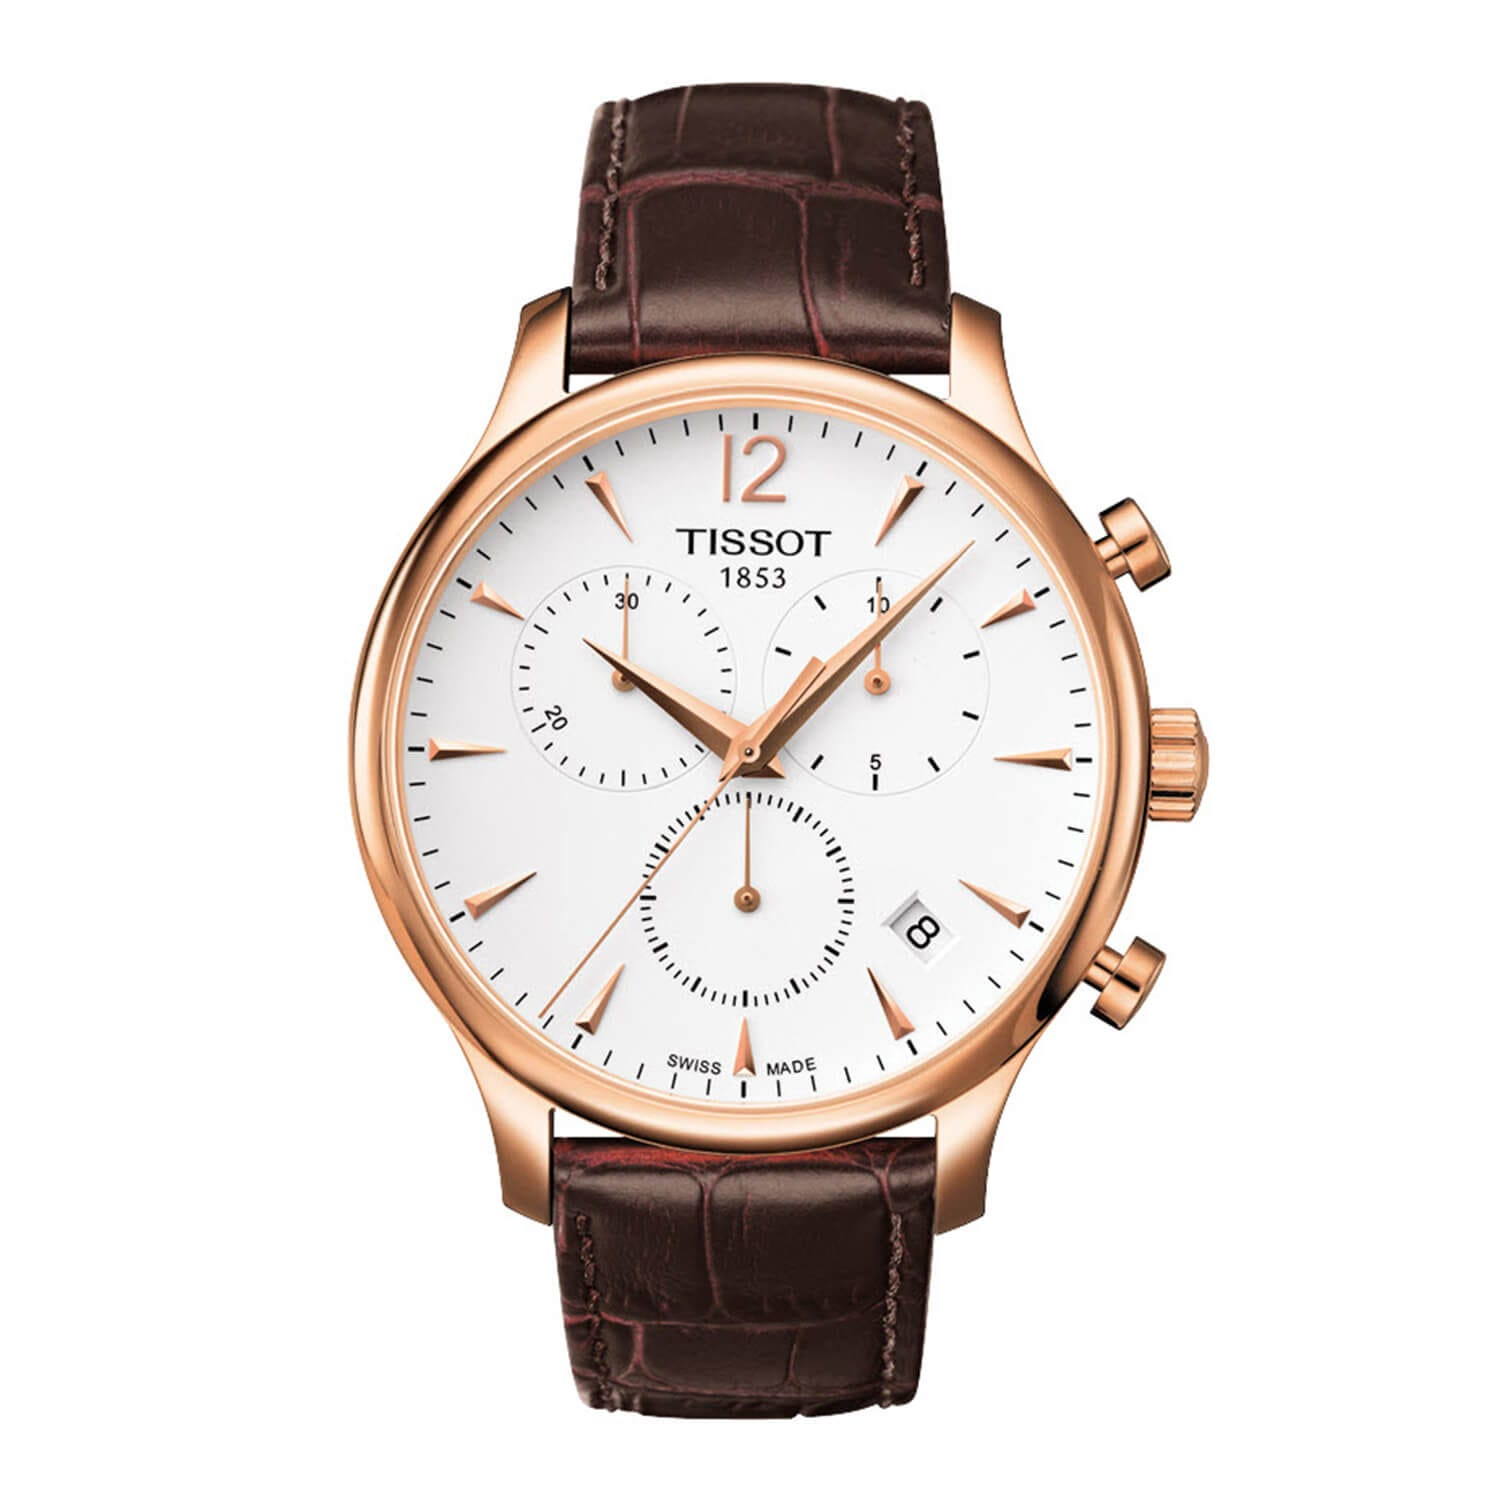 Tissot Tradition Men's Brown Leather Strap Chronograph Watch